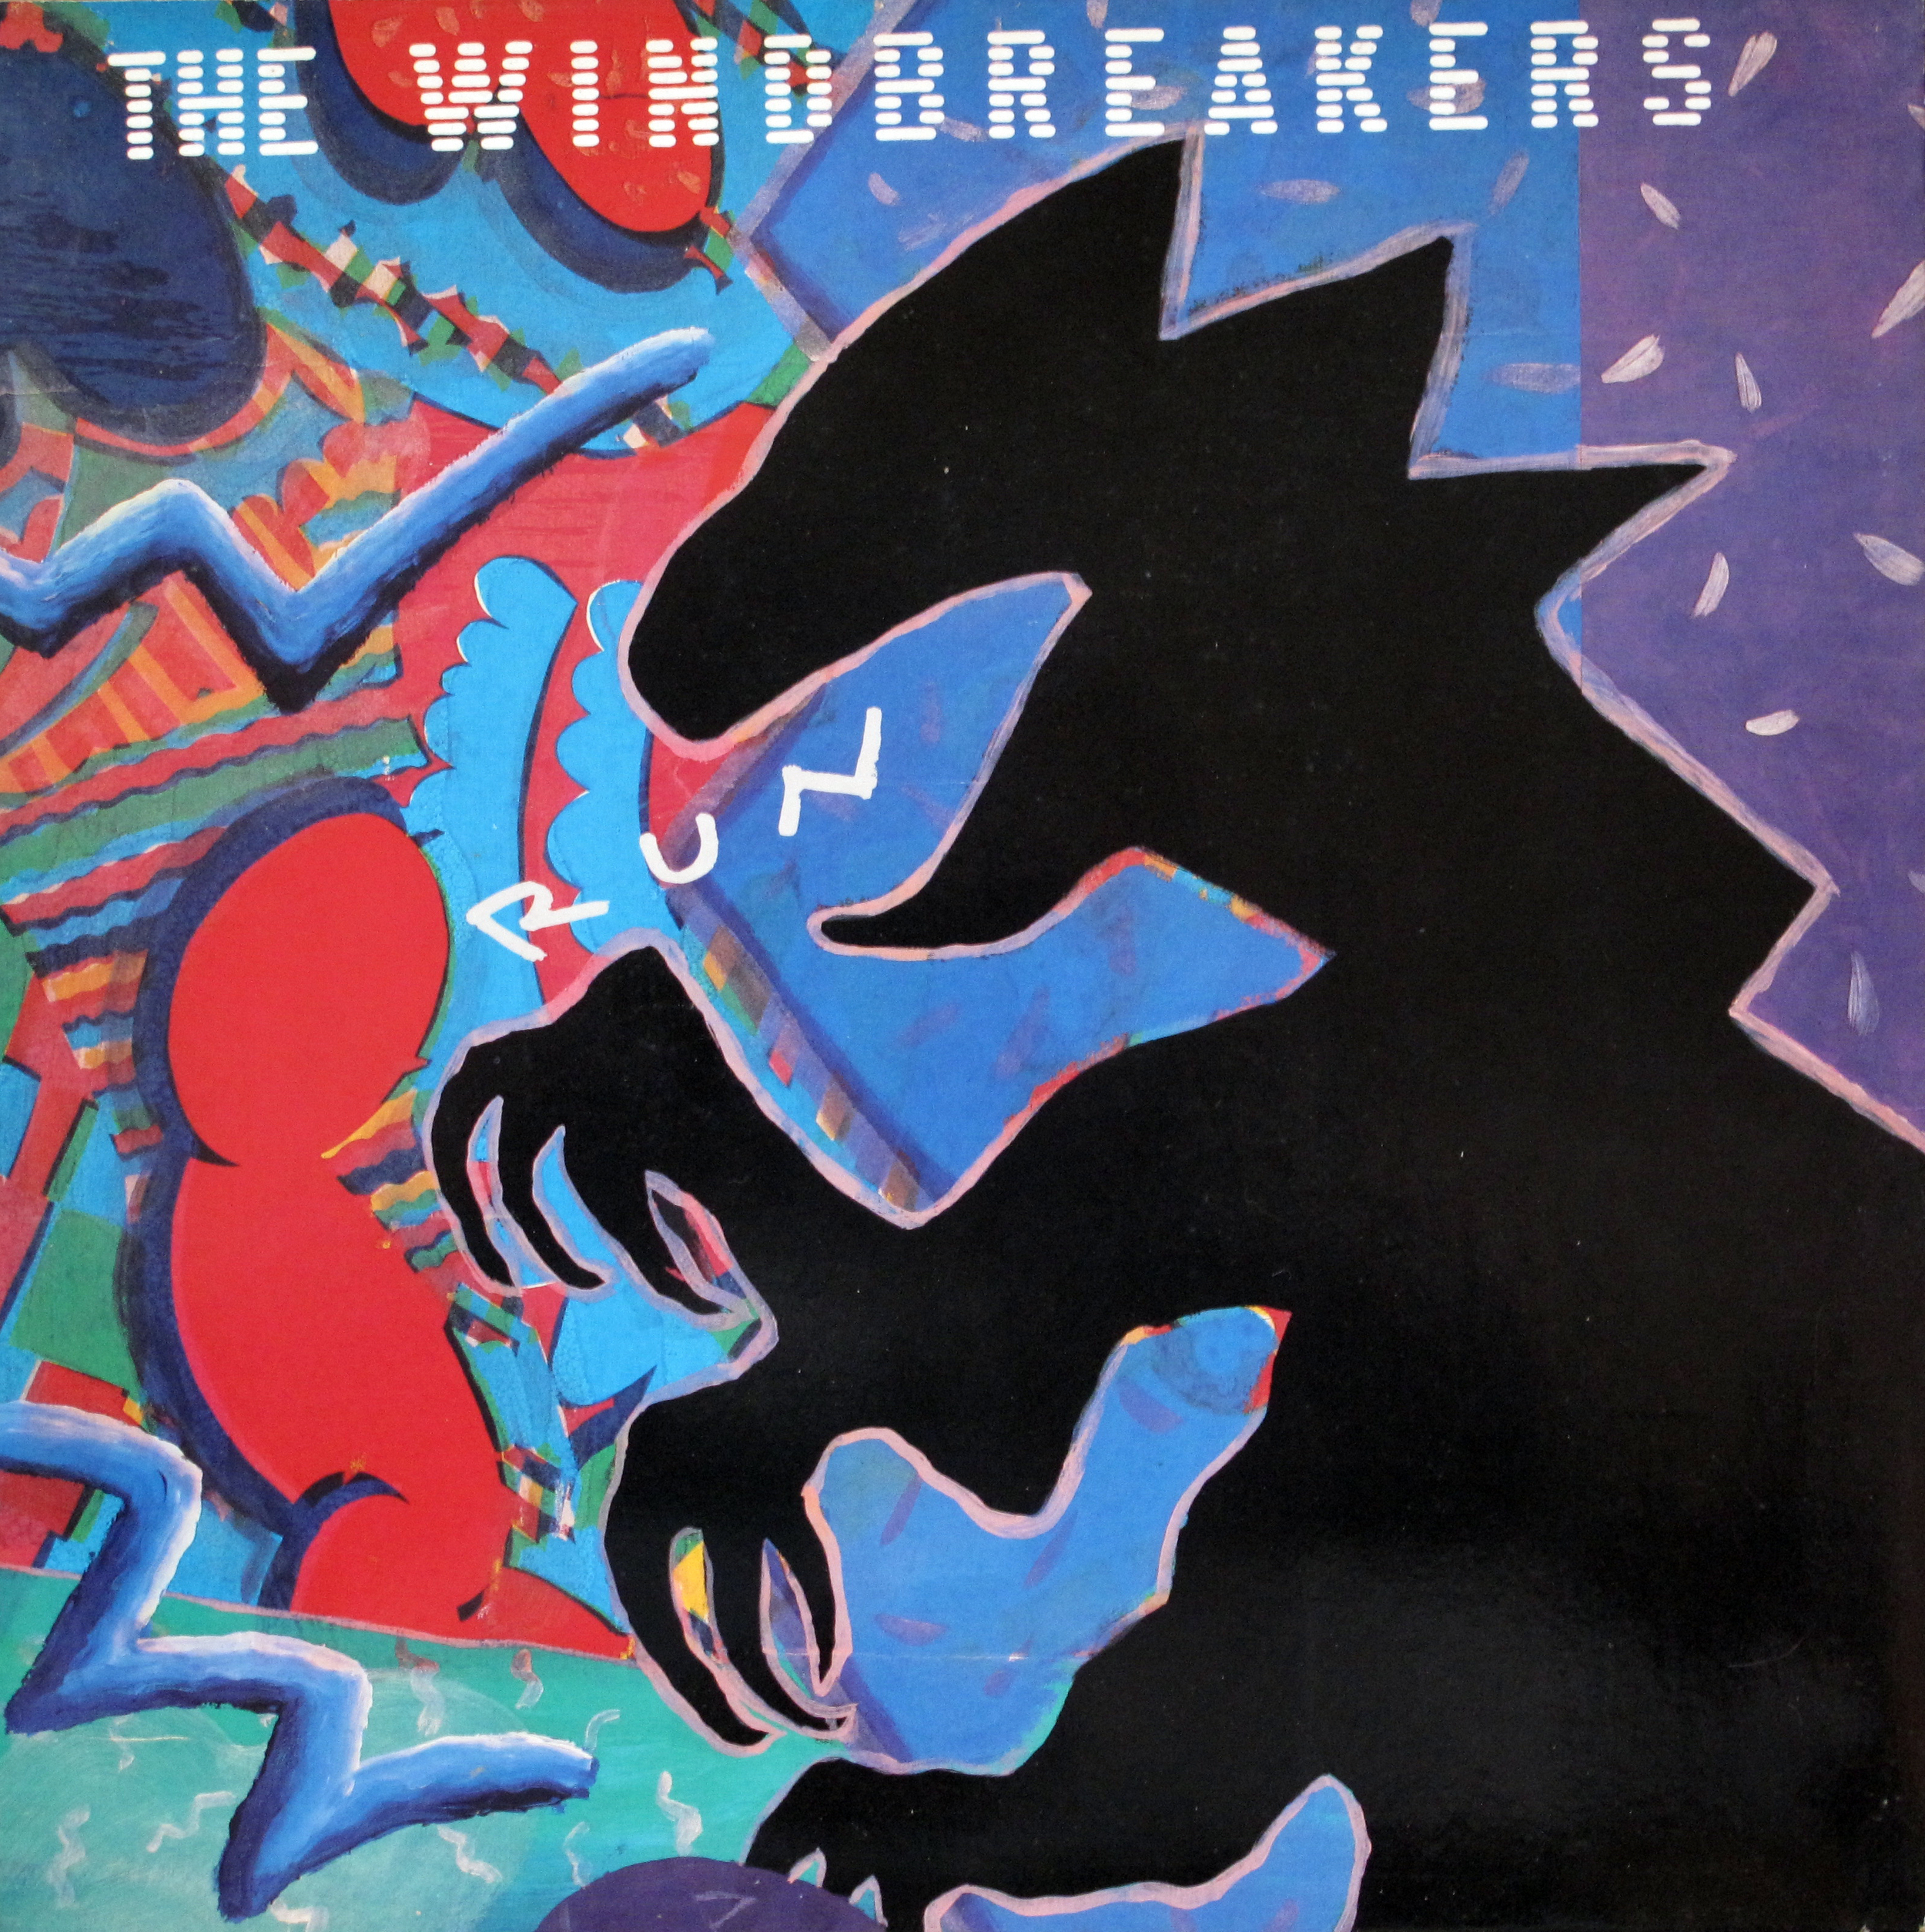 Windbreakers cover 1986